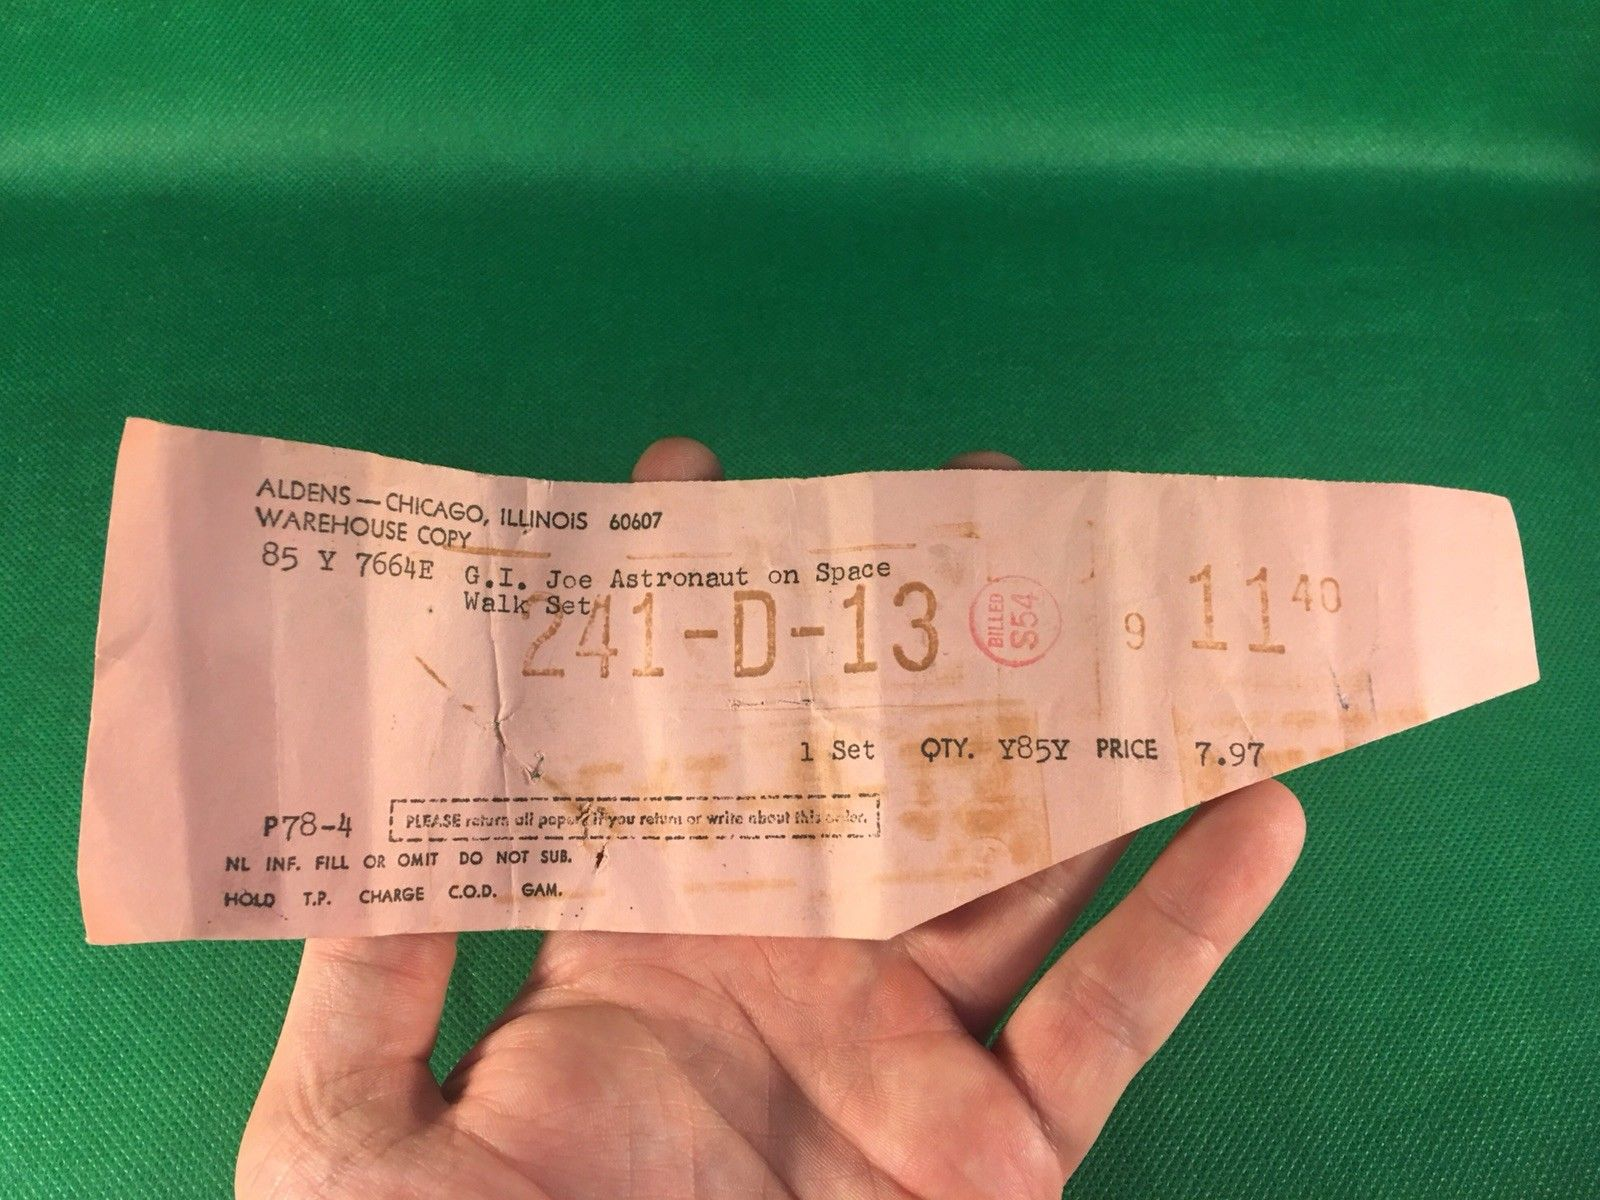 VINTAGE 1964 GI JOE -- 1969 ADVENTURES OF : SPACEWALK MYSTERY SALE RECEIPT PAPER